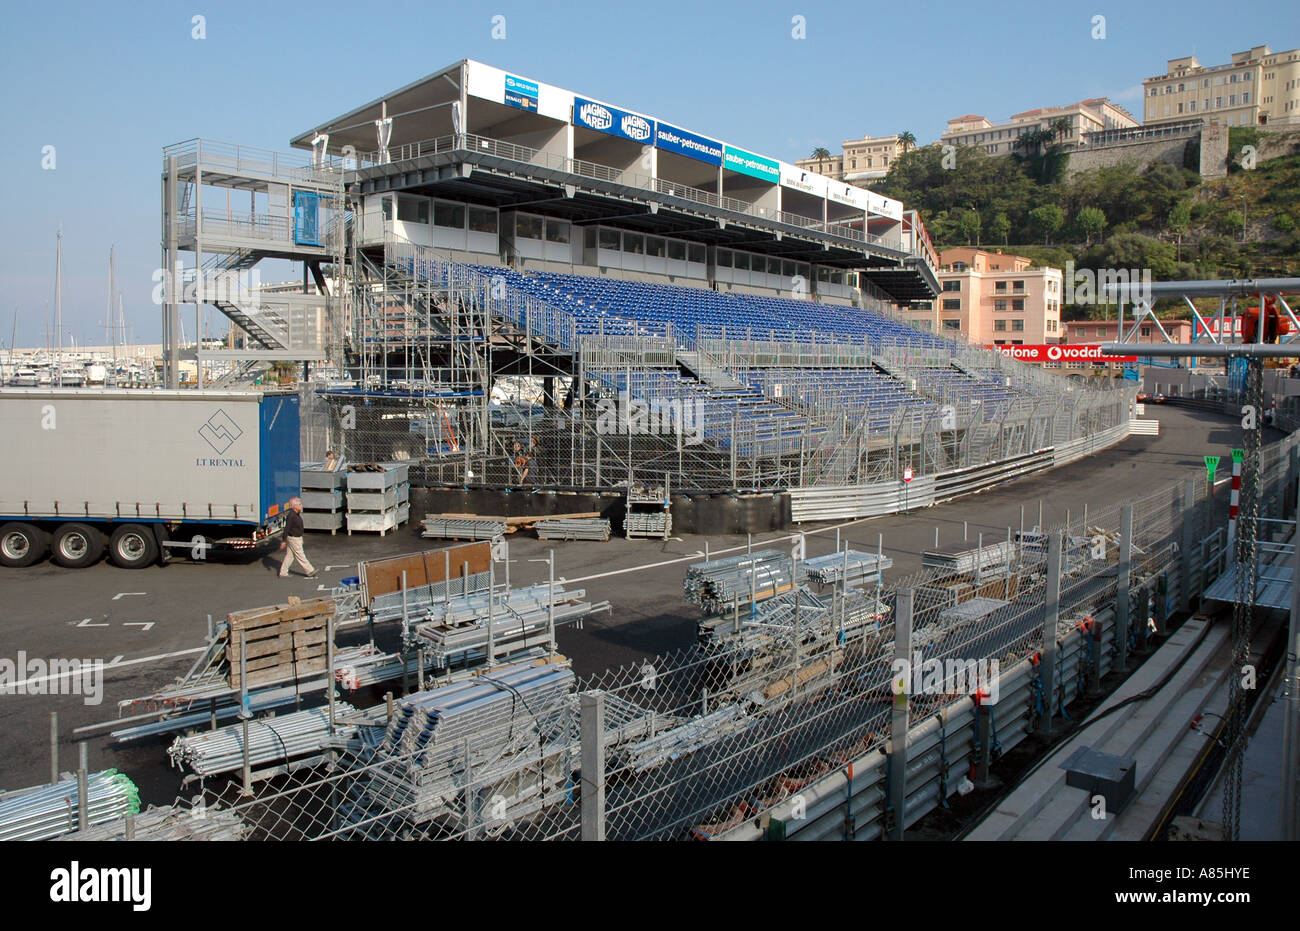 Monaco's famous Grand Prix track viewed from the pits, Port Hercule, Monaco-Ville, Monaco - Stock Image